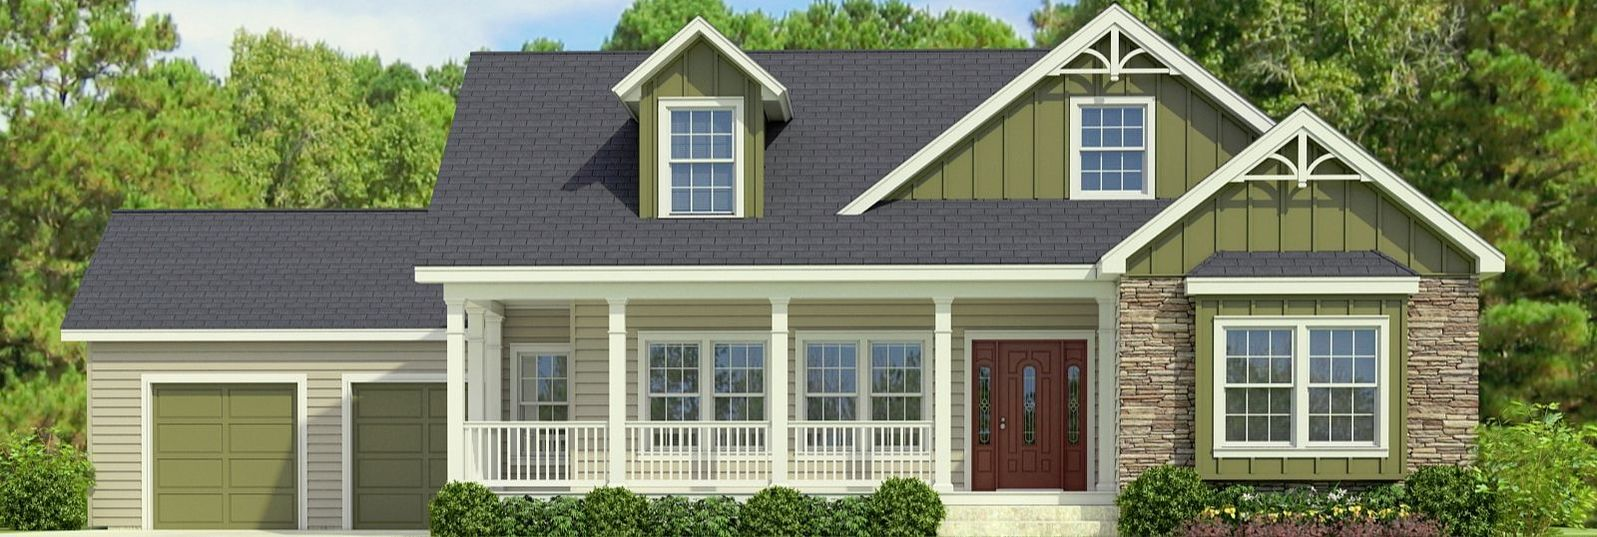 The Buckeye II Cape Cod Style Modular Home has a Trademark Wrap Porch and More - Lincolnton, NC